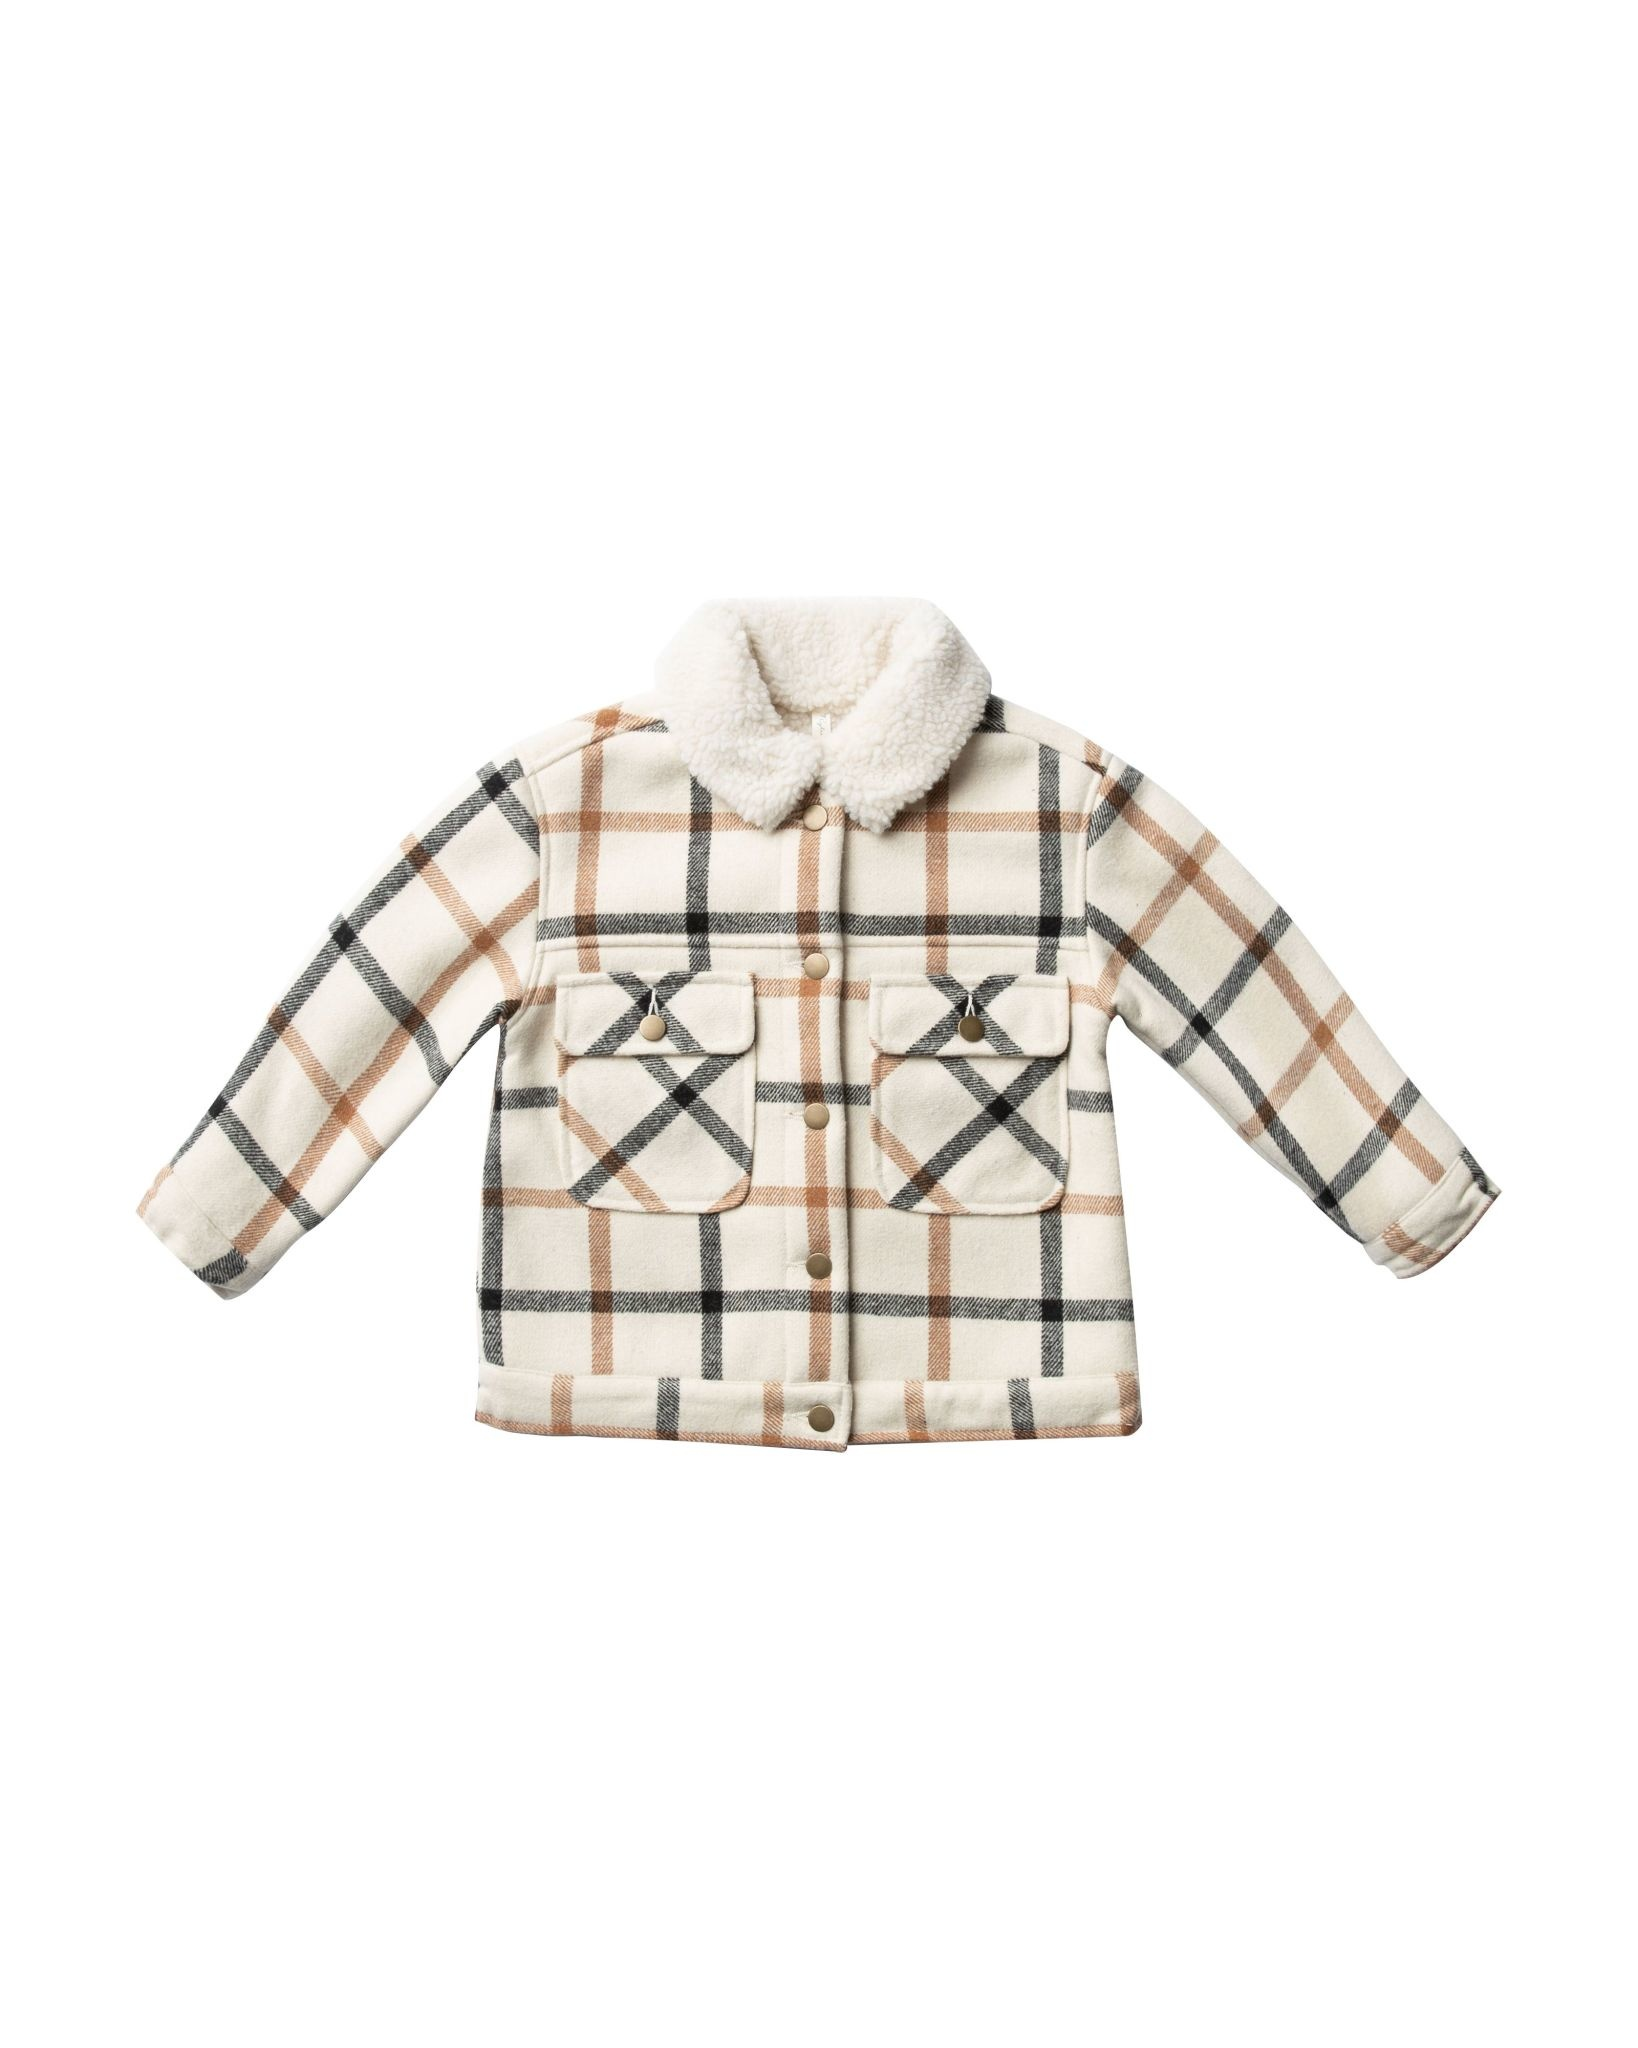 RYLEE AND CRU Julian Baby Jacket